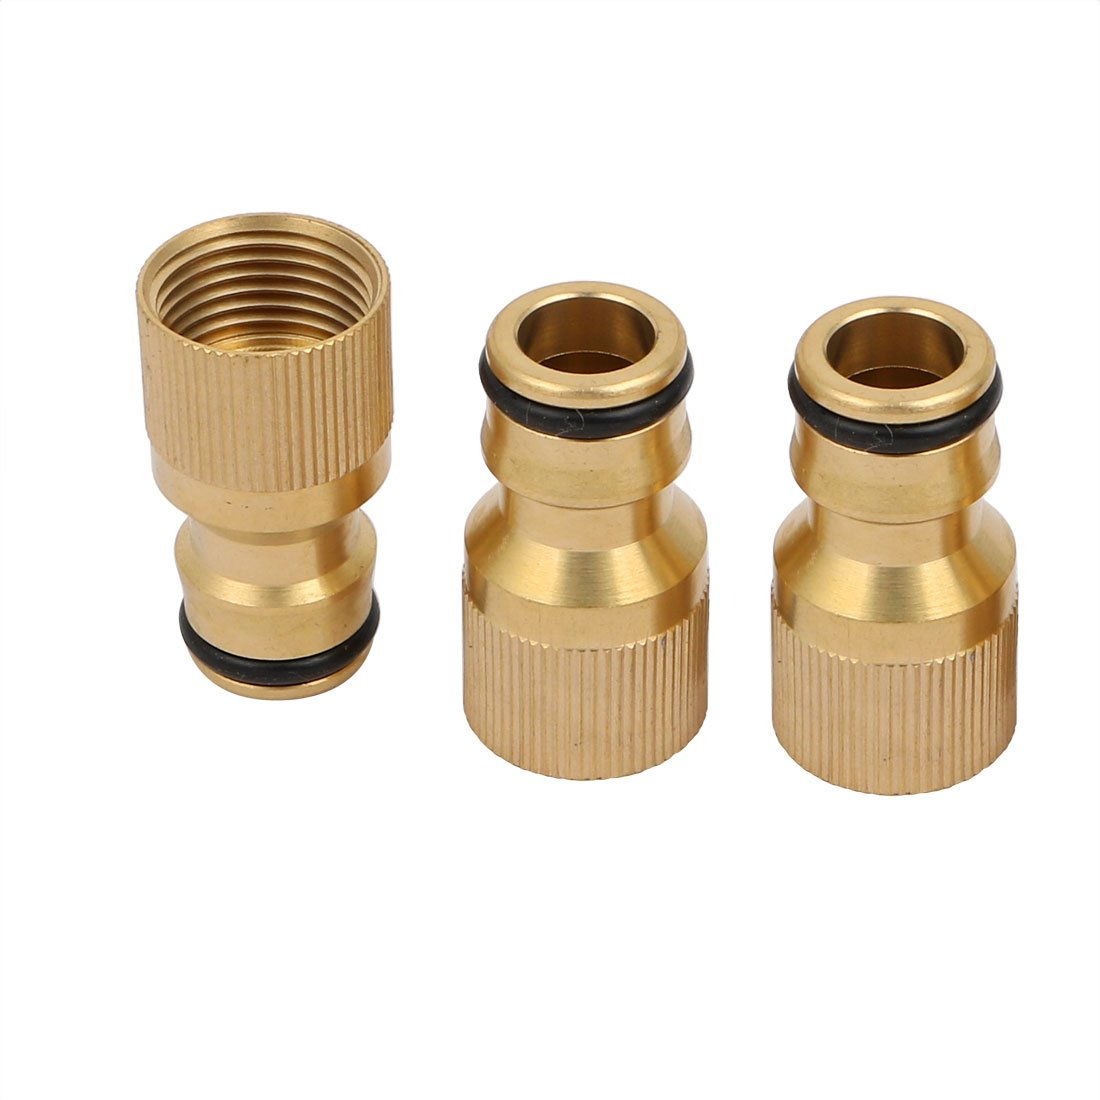 sourcingmap 3pcs M18x1.5mm Female Thread Faucet Water Hose Pipe Switch Connector Tap Fitting a17072200ux0160